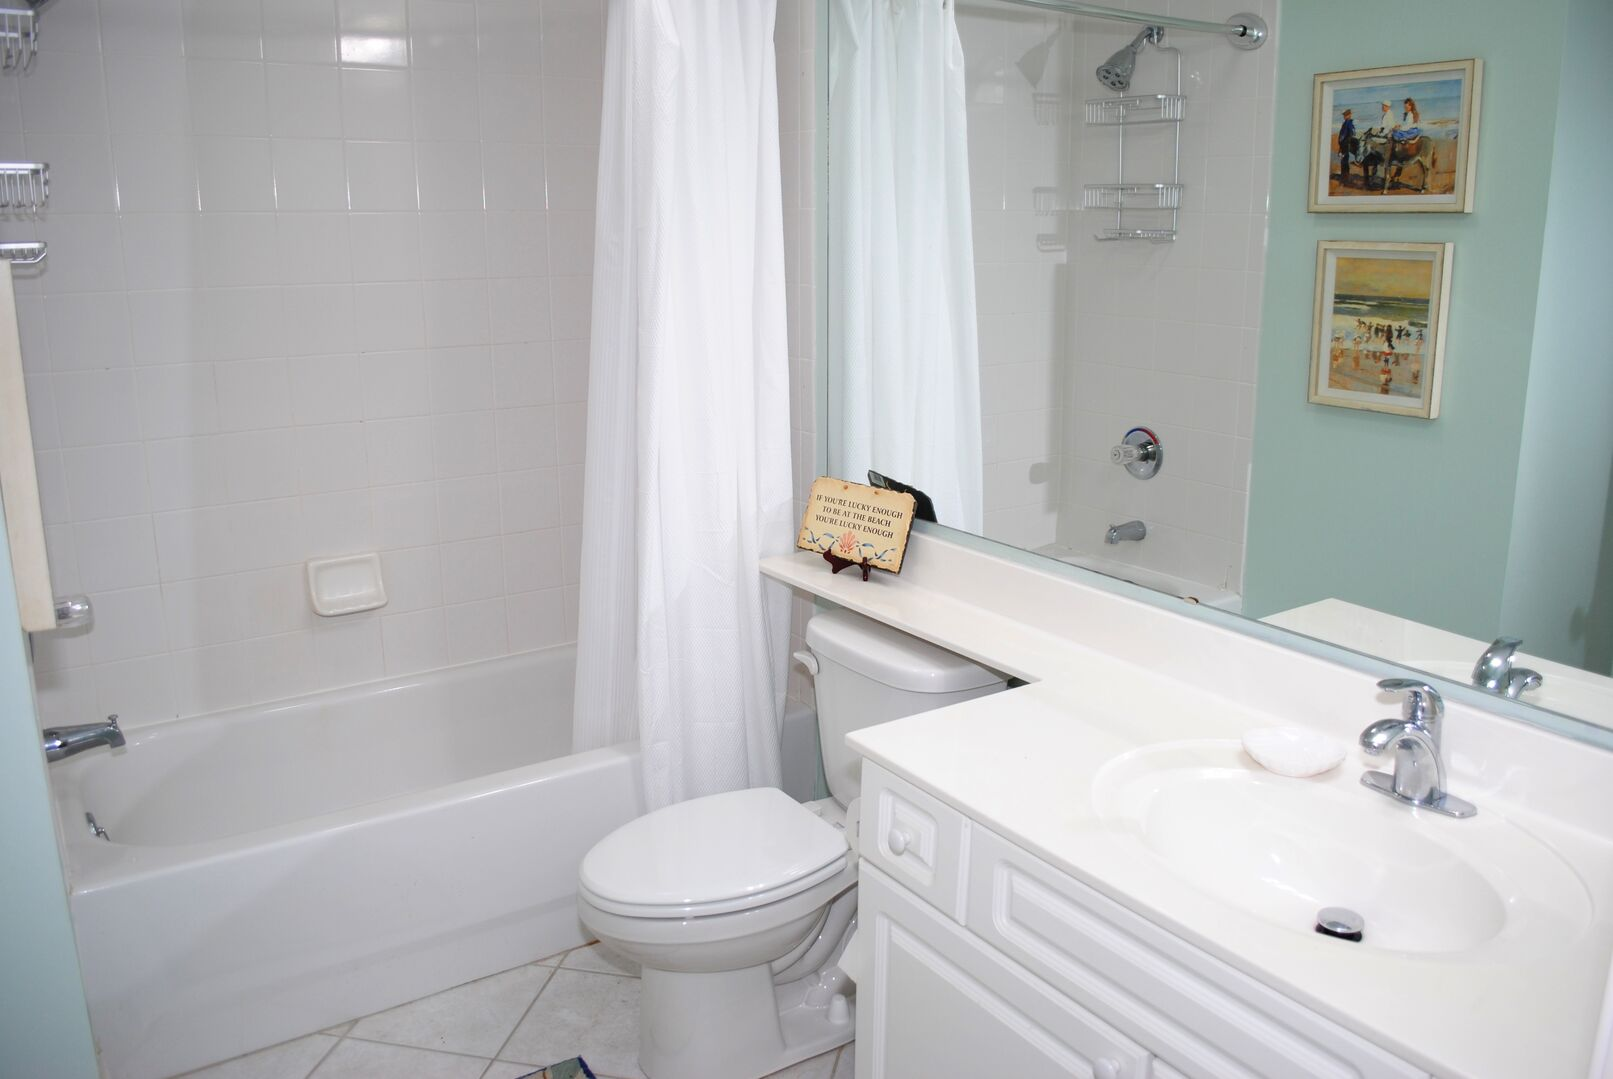 Bathroom accessible by king bedroom and hallway